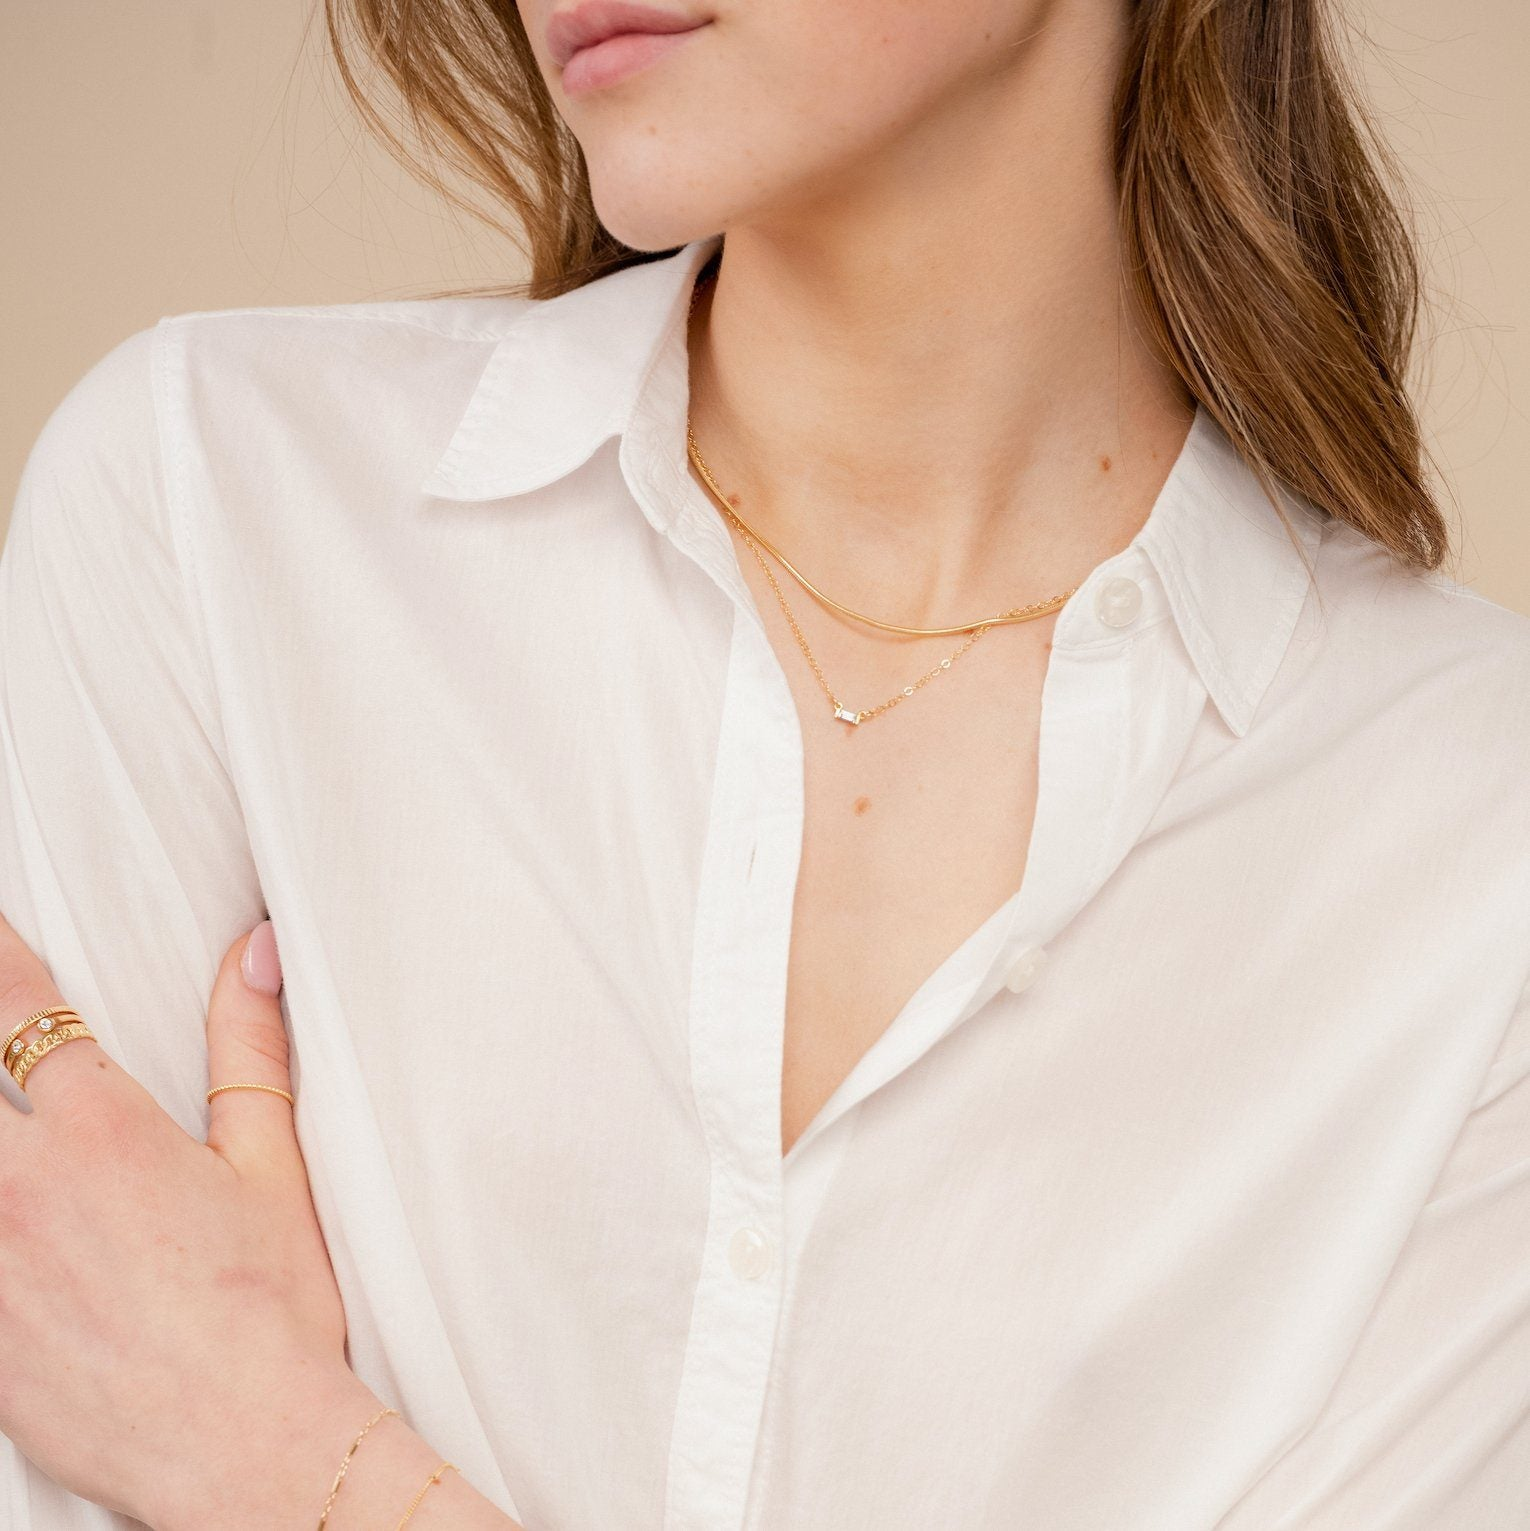 The dainty gold Elegant Necklace Set by Katie Dean Jewelry as seen on a model wearing a white button up collared shirt and dainty gold stacking rings.